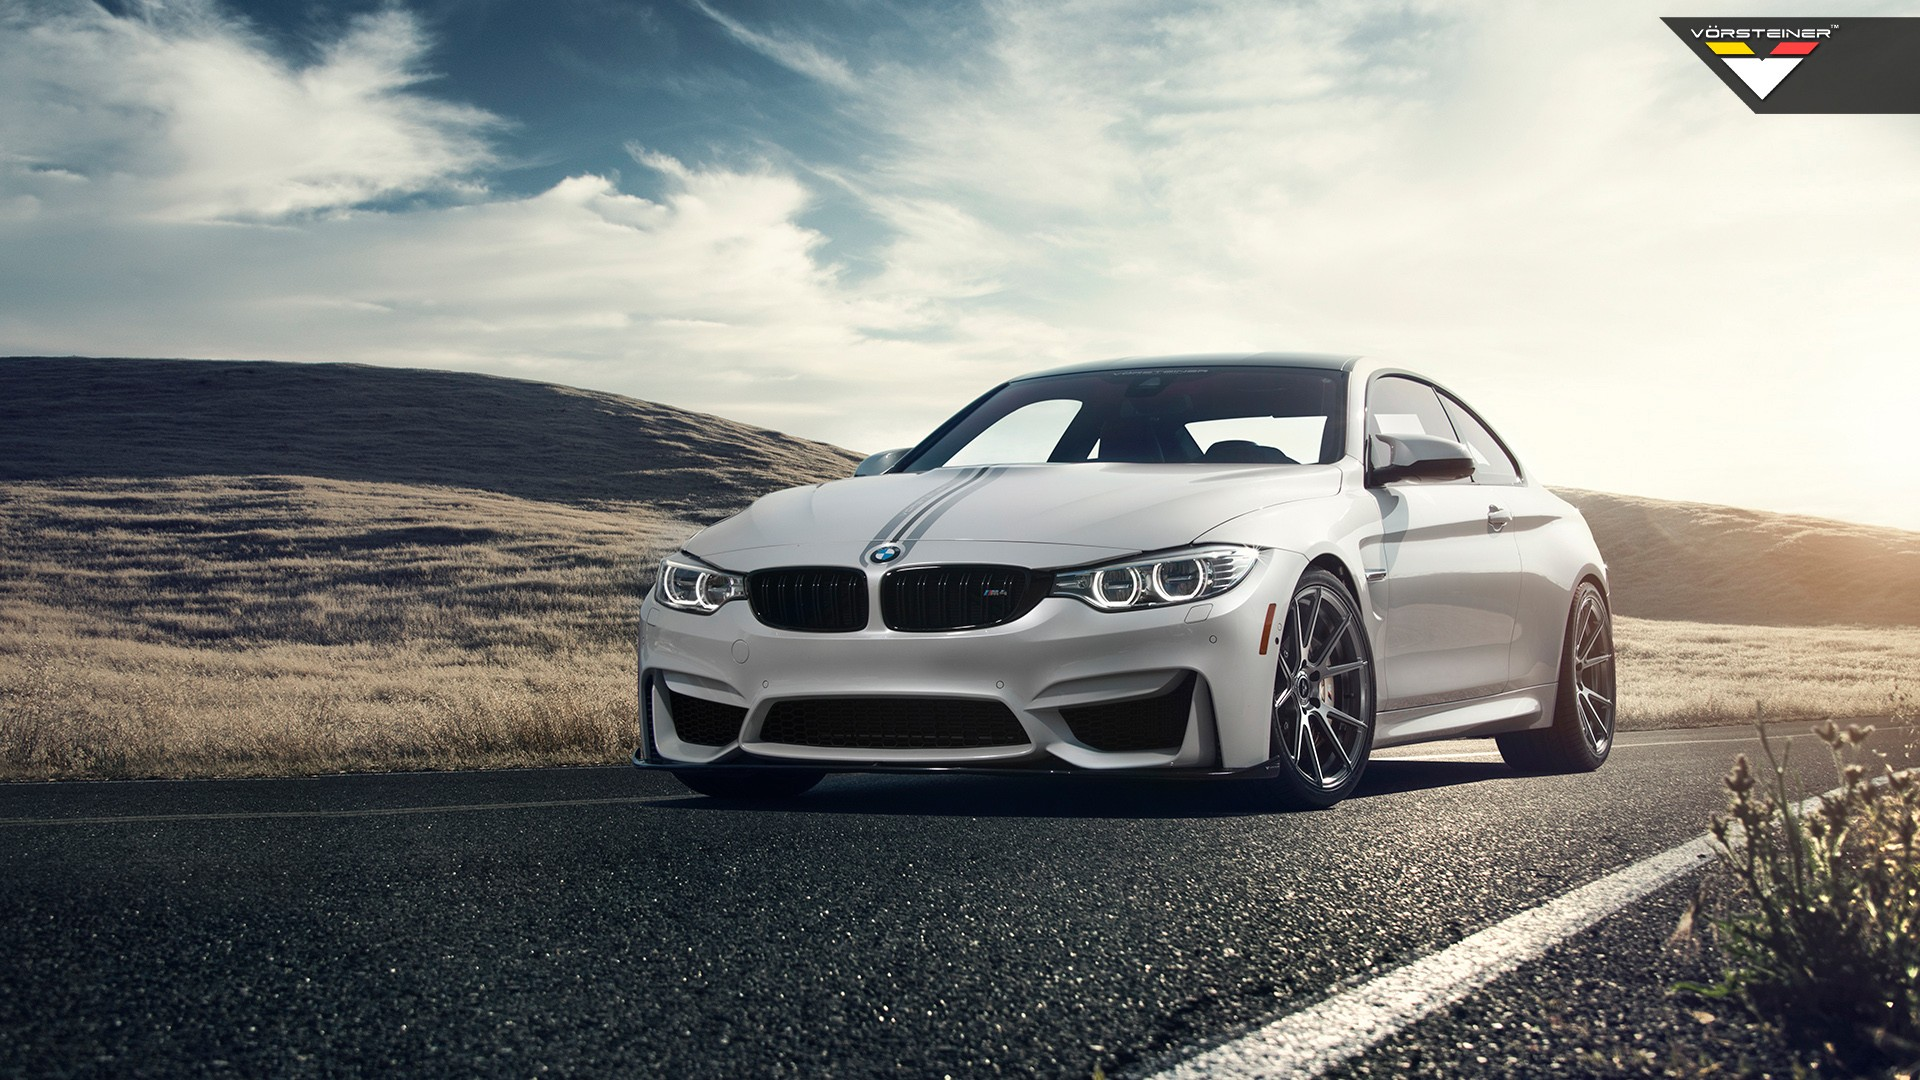 Vorsteiner Bmw F82 M4 Wallpaper Hd Car Wallpapers Id 5917